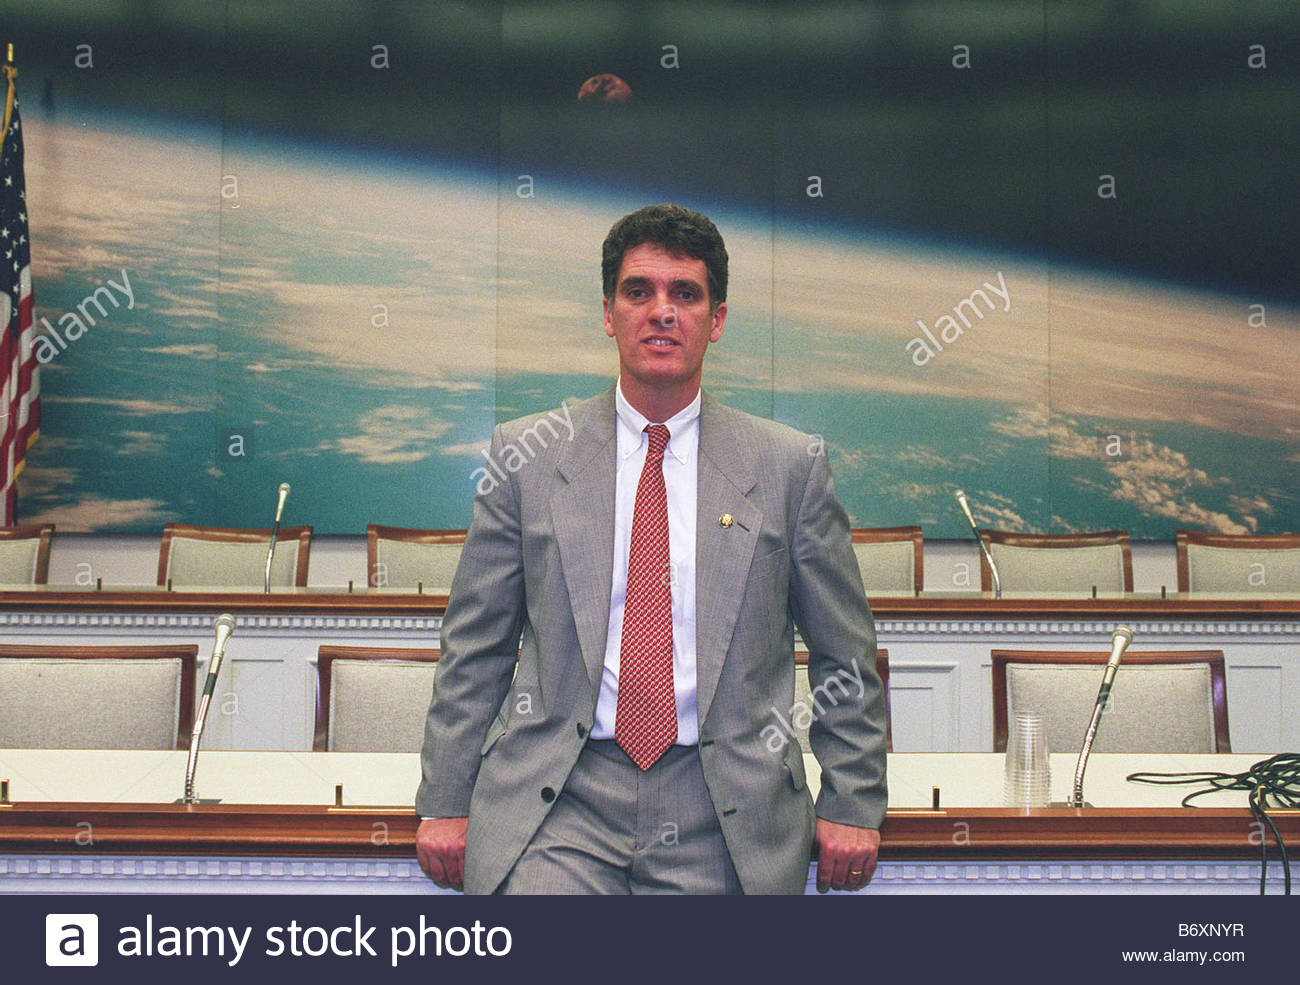 5 98 NASA Rep Dave Weldon R Fla whose district is home to Cape Canaveral and the Kennedy Space Center in the meeting - Stock Image